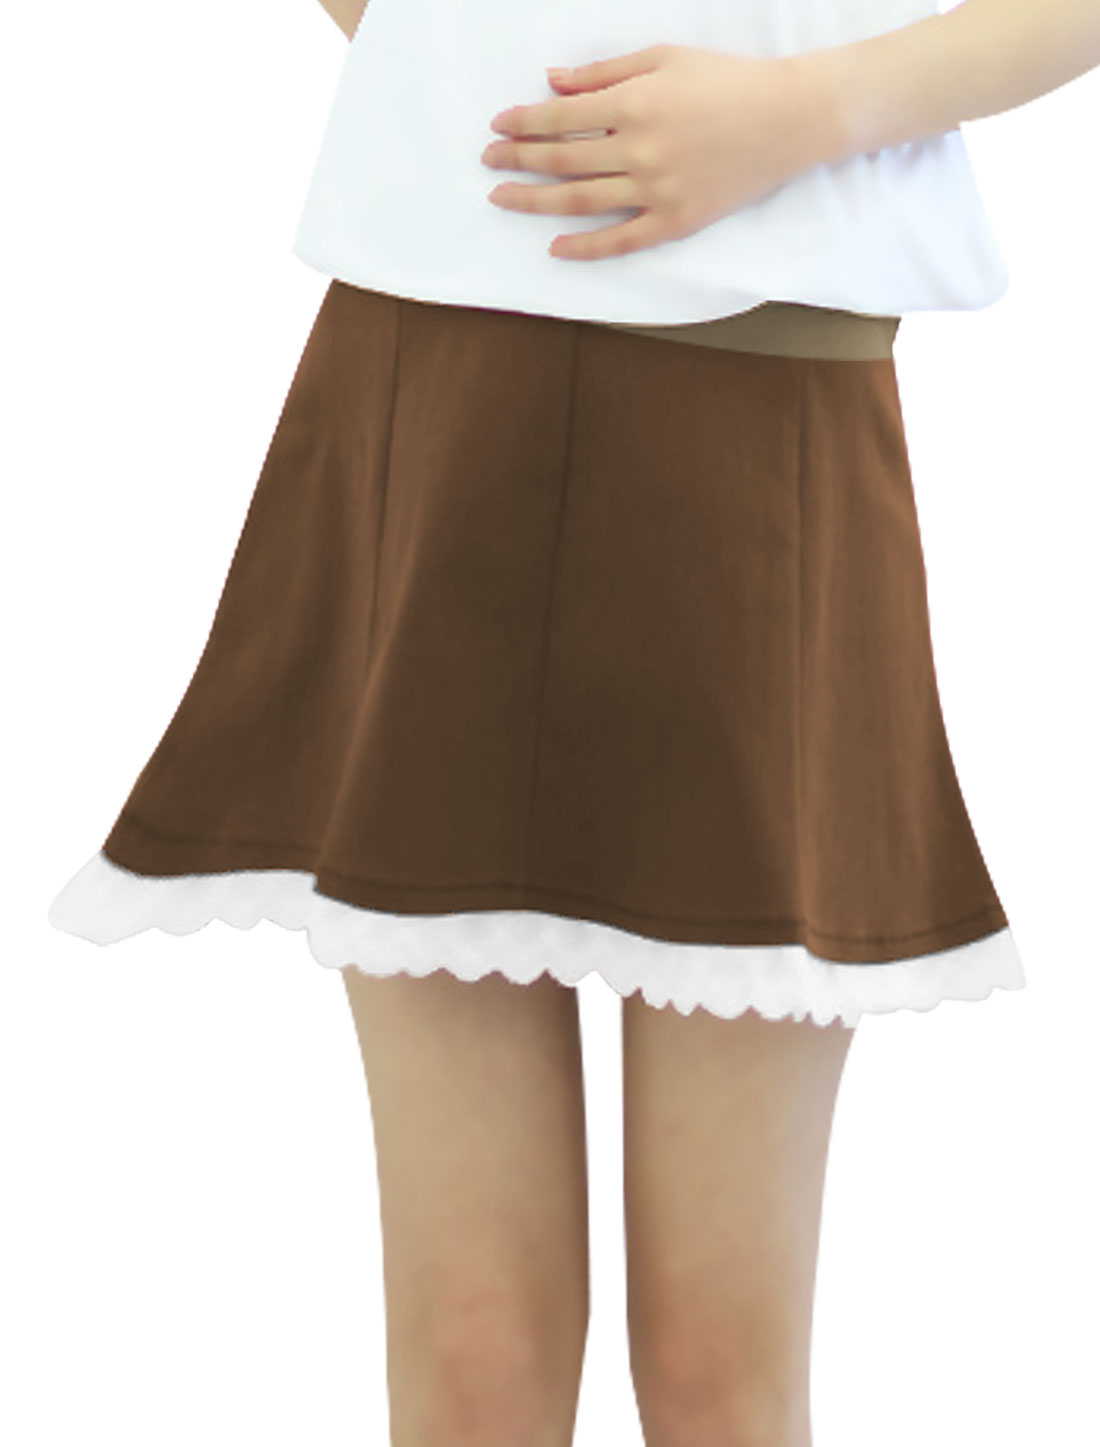 Motherhood Rib Knit Panel Crochet Trim Skirt Brown XS